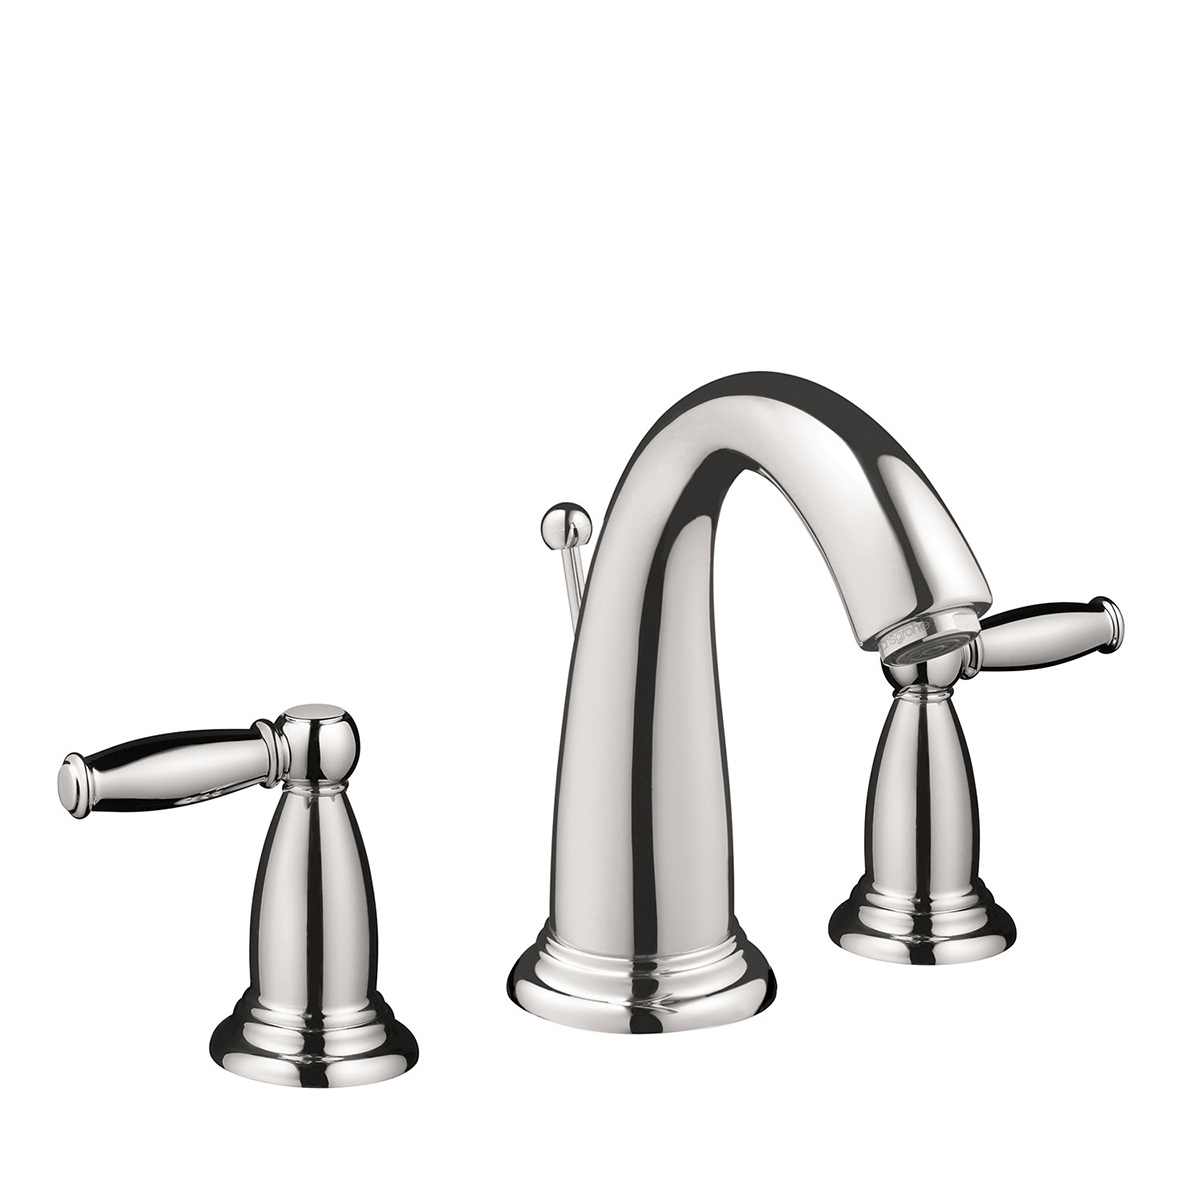 Hansgrohe 06117000 Chrome Swing C Bathroom Faucet Widespread Faucet With  Lever Handles